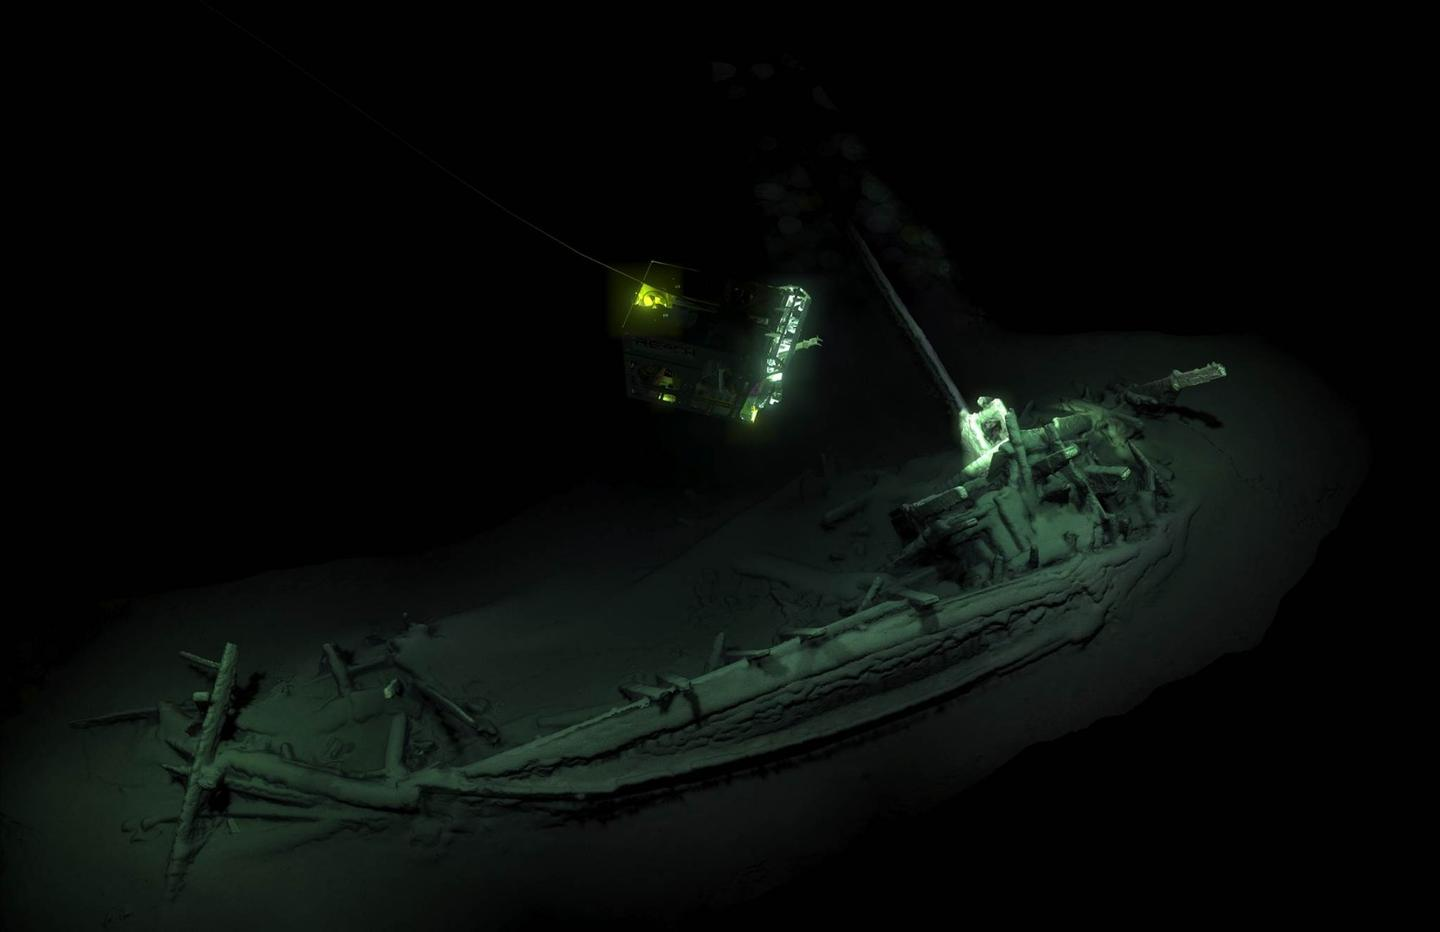 The shipwreck is located at a depth of over 2 km (1.2 miles)